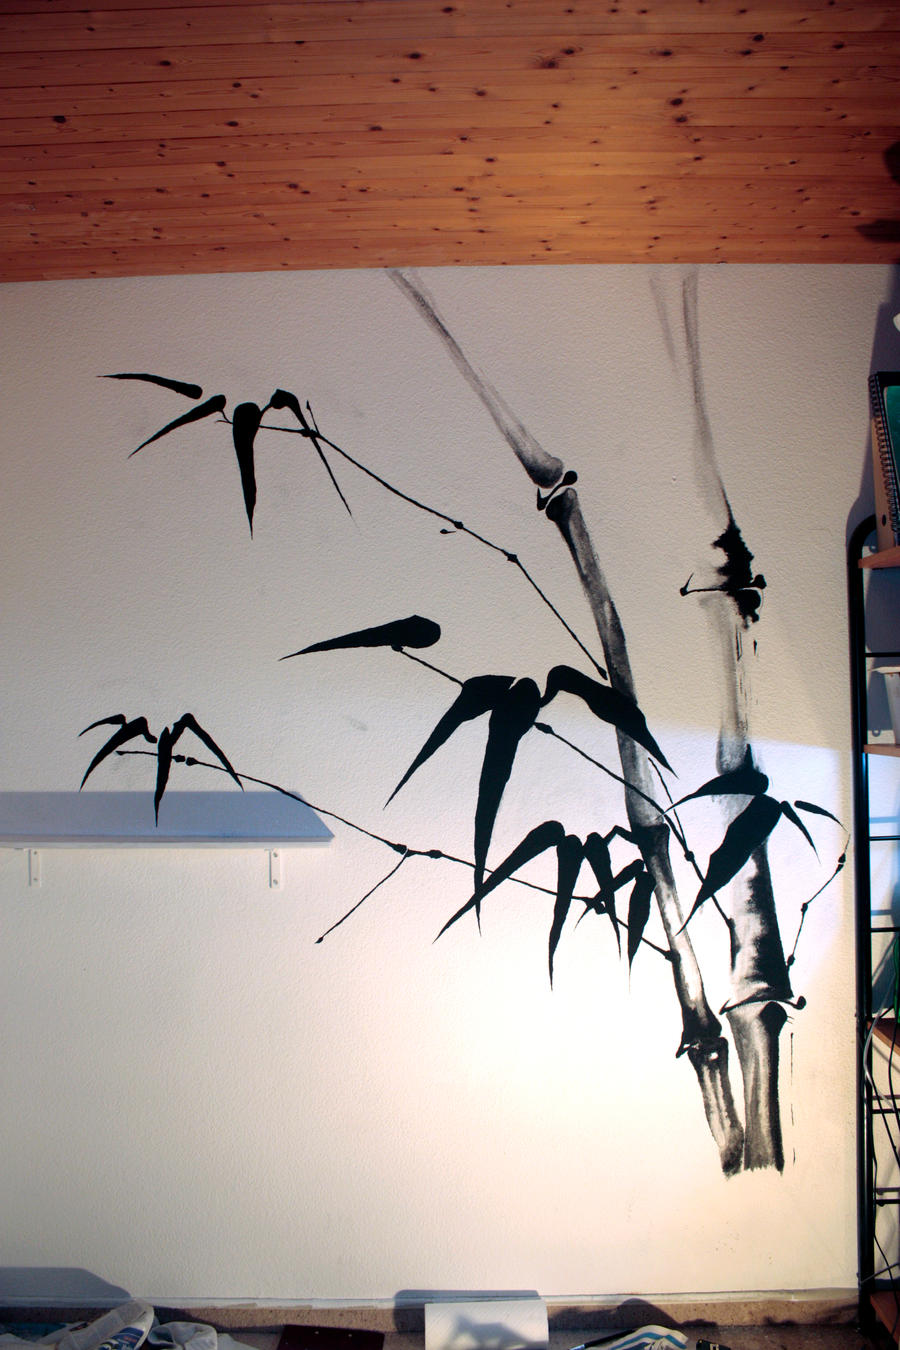 Bamboo wall painting by vodoc on deviantart A wall painting